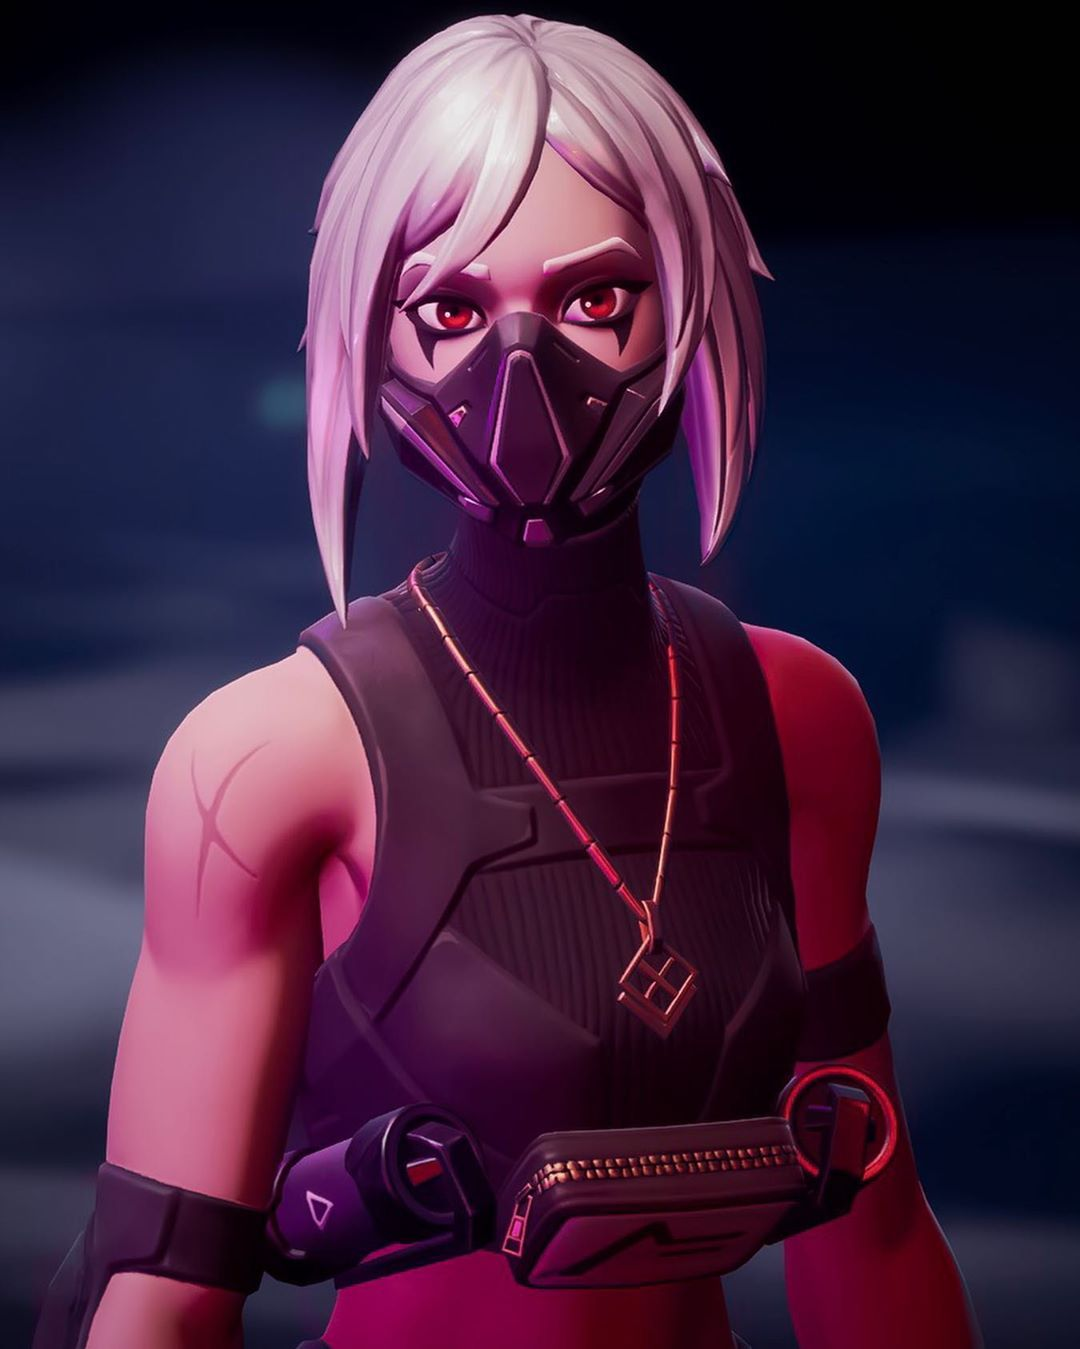 Pin By Pro Gamer Station On Fortnite Profile Pic In 2020 Best Gaming Wallpapers Gamer Pics Gaming Wallpapers